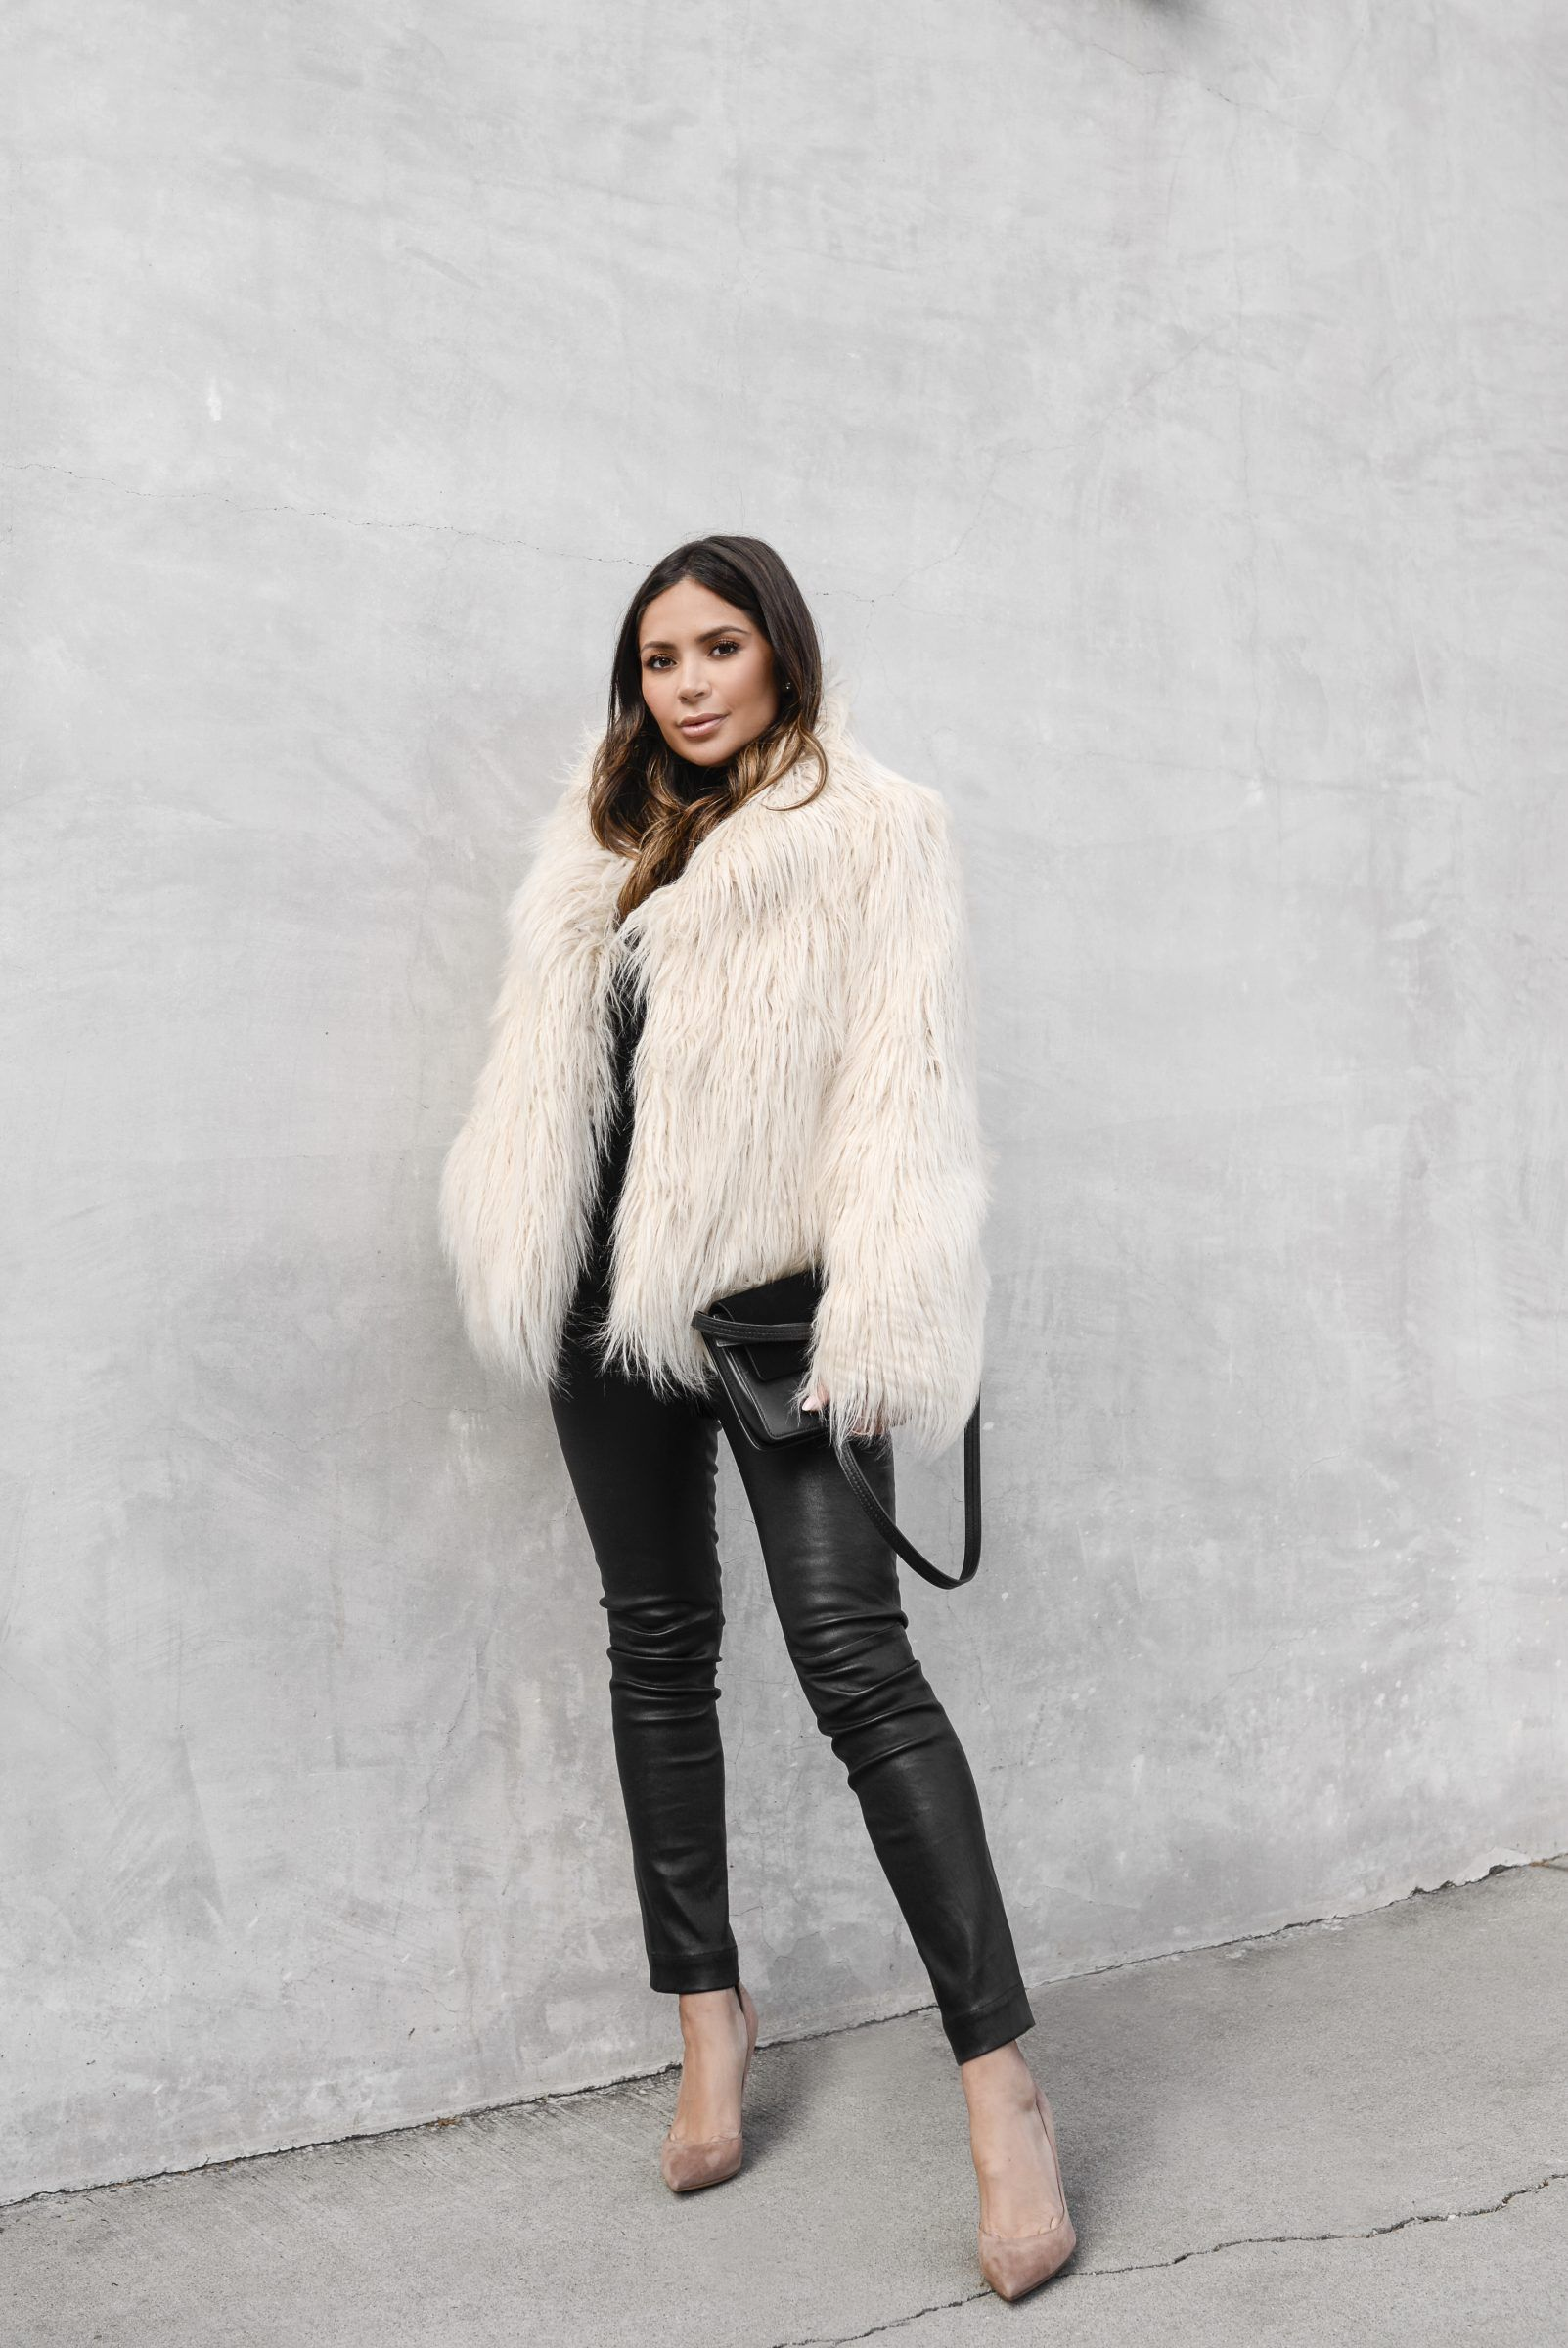 891498207a0153 marianna-hewitt-blog-life-with-me-youtube-hair-faux-fur-coat-leather-pants